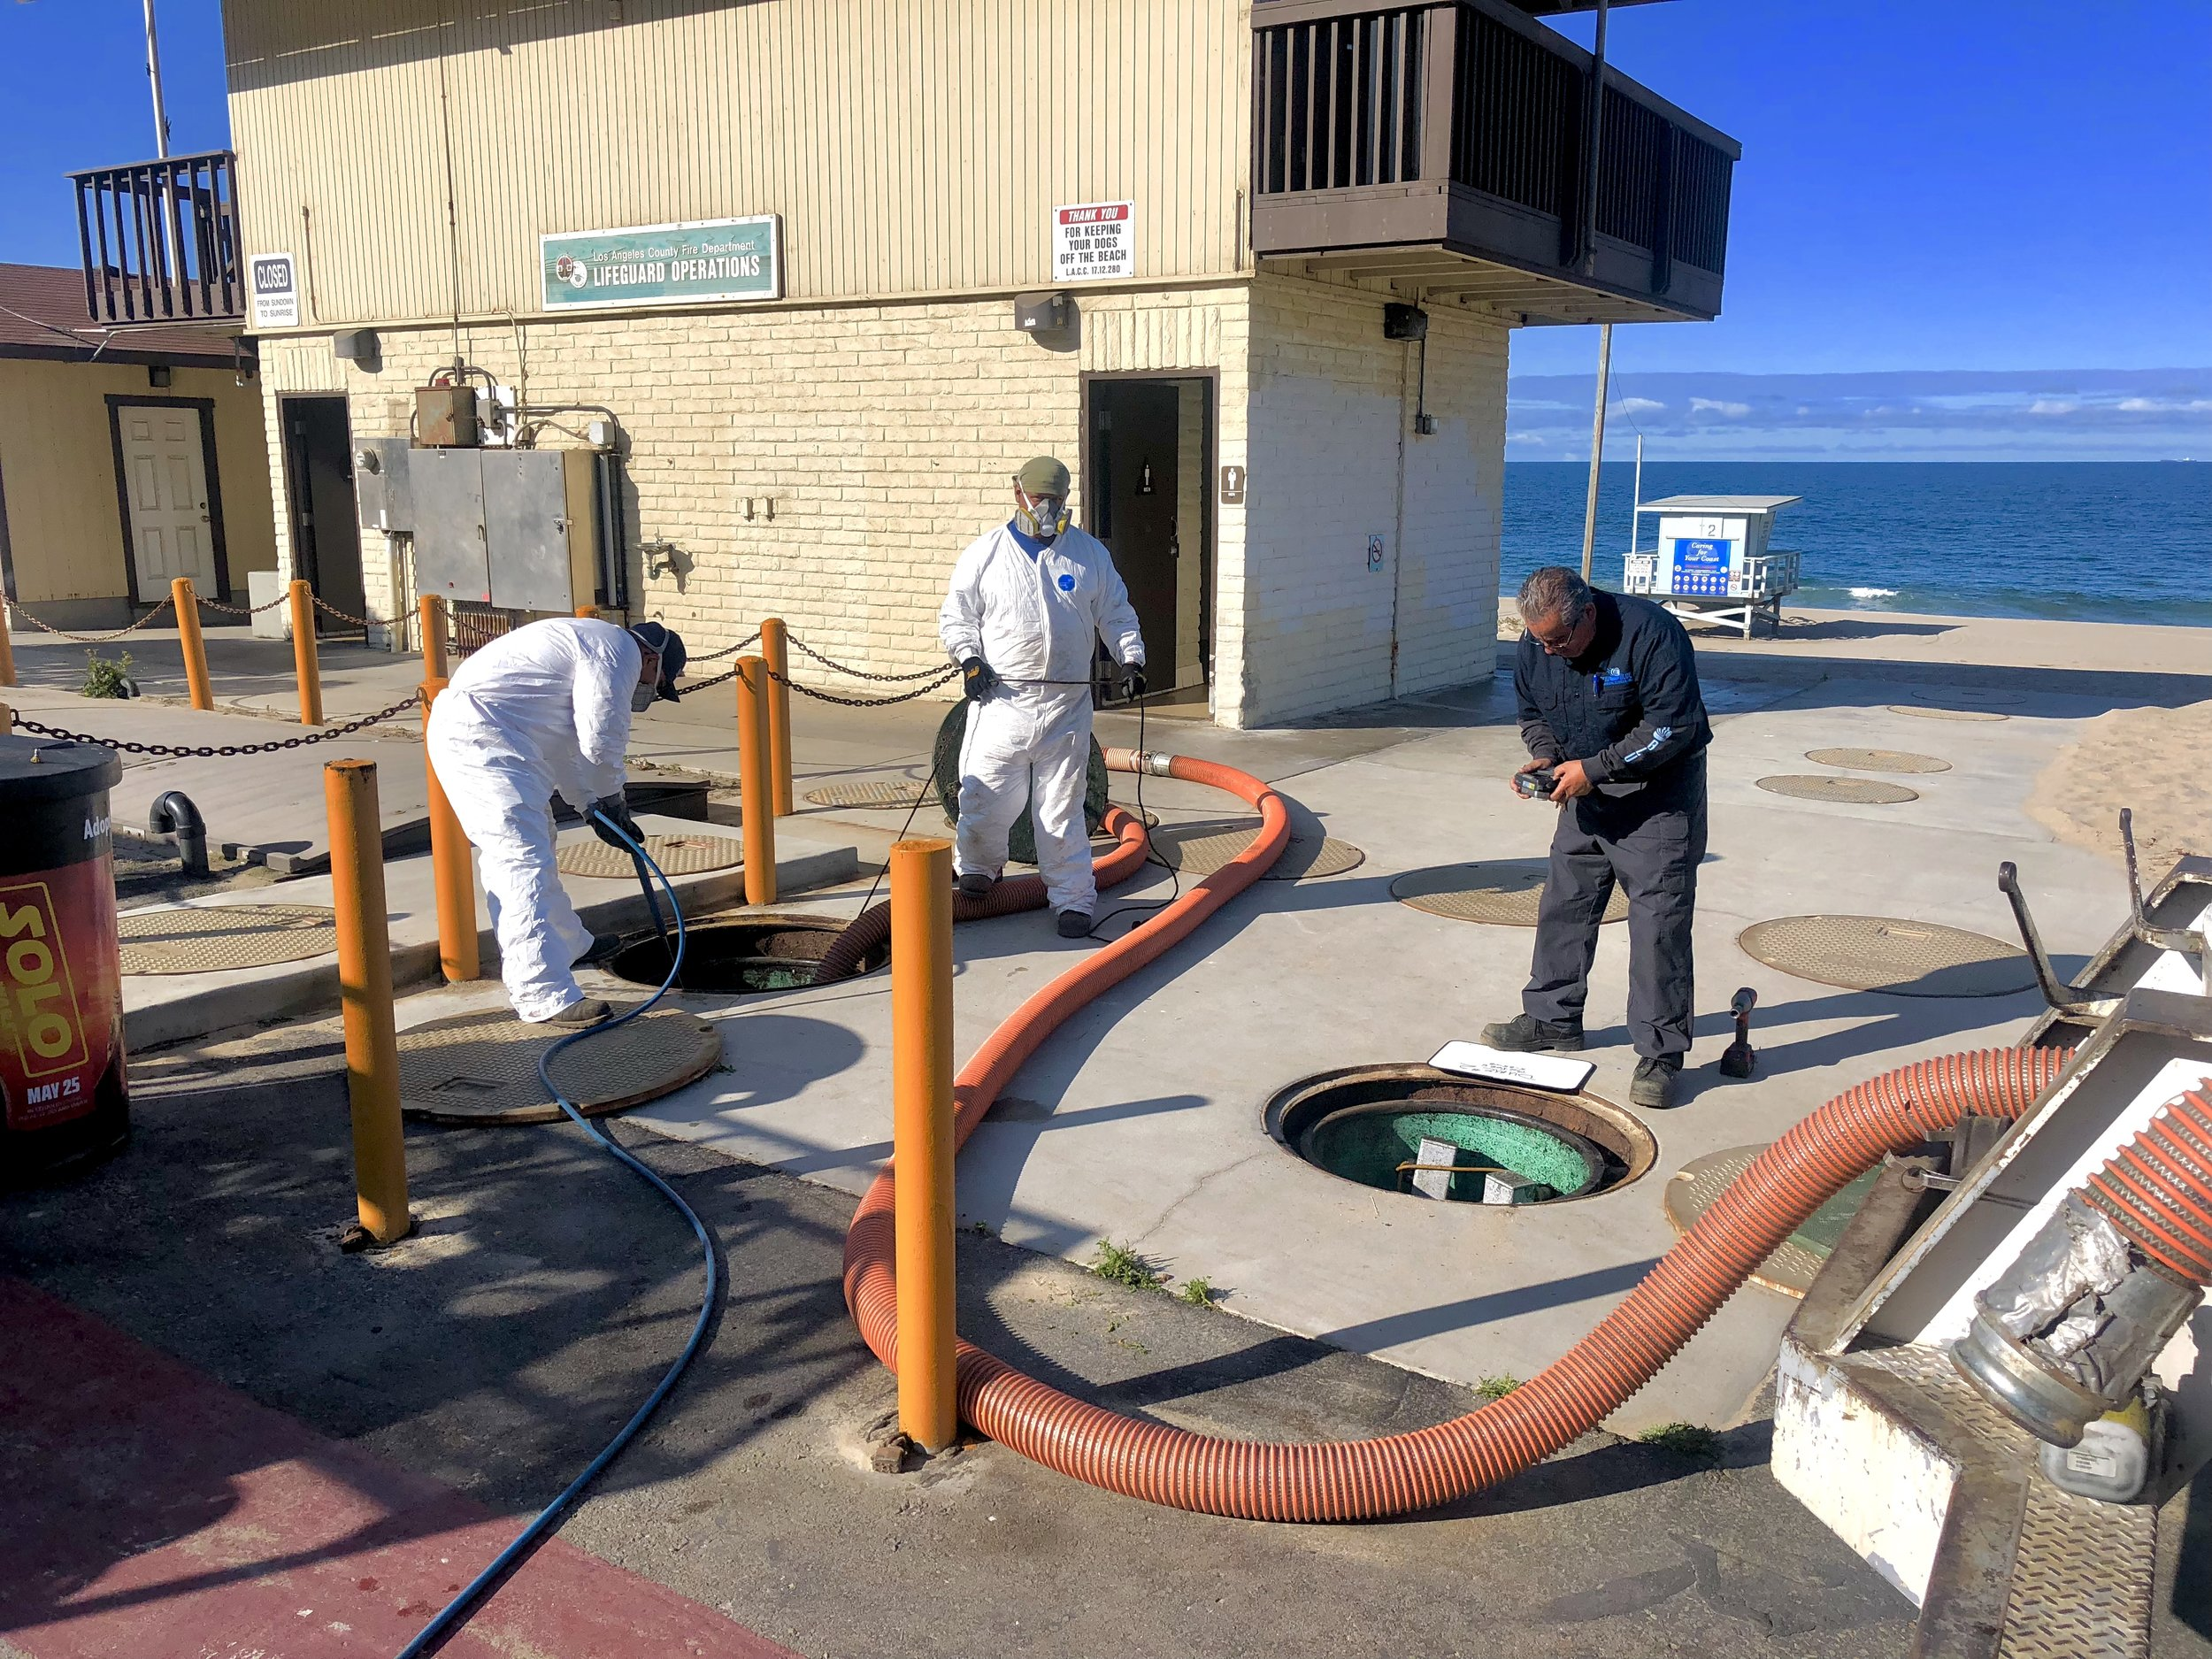 Septic Tank Services - Ocean Blue regularly services Septic Tanks & responds to Septic Tank overflows.